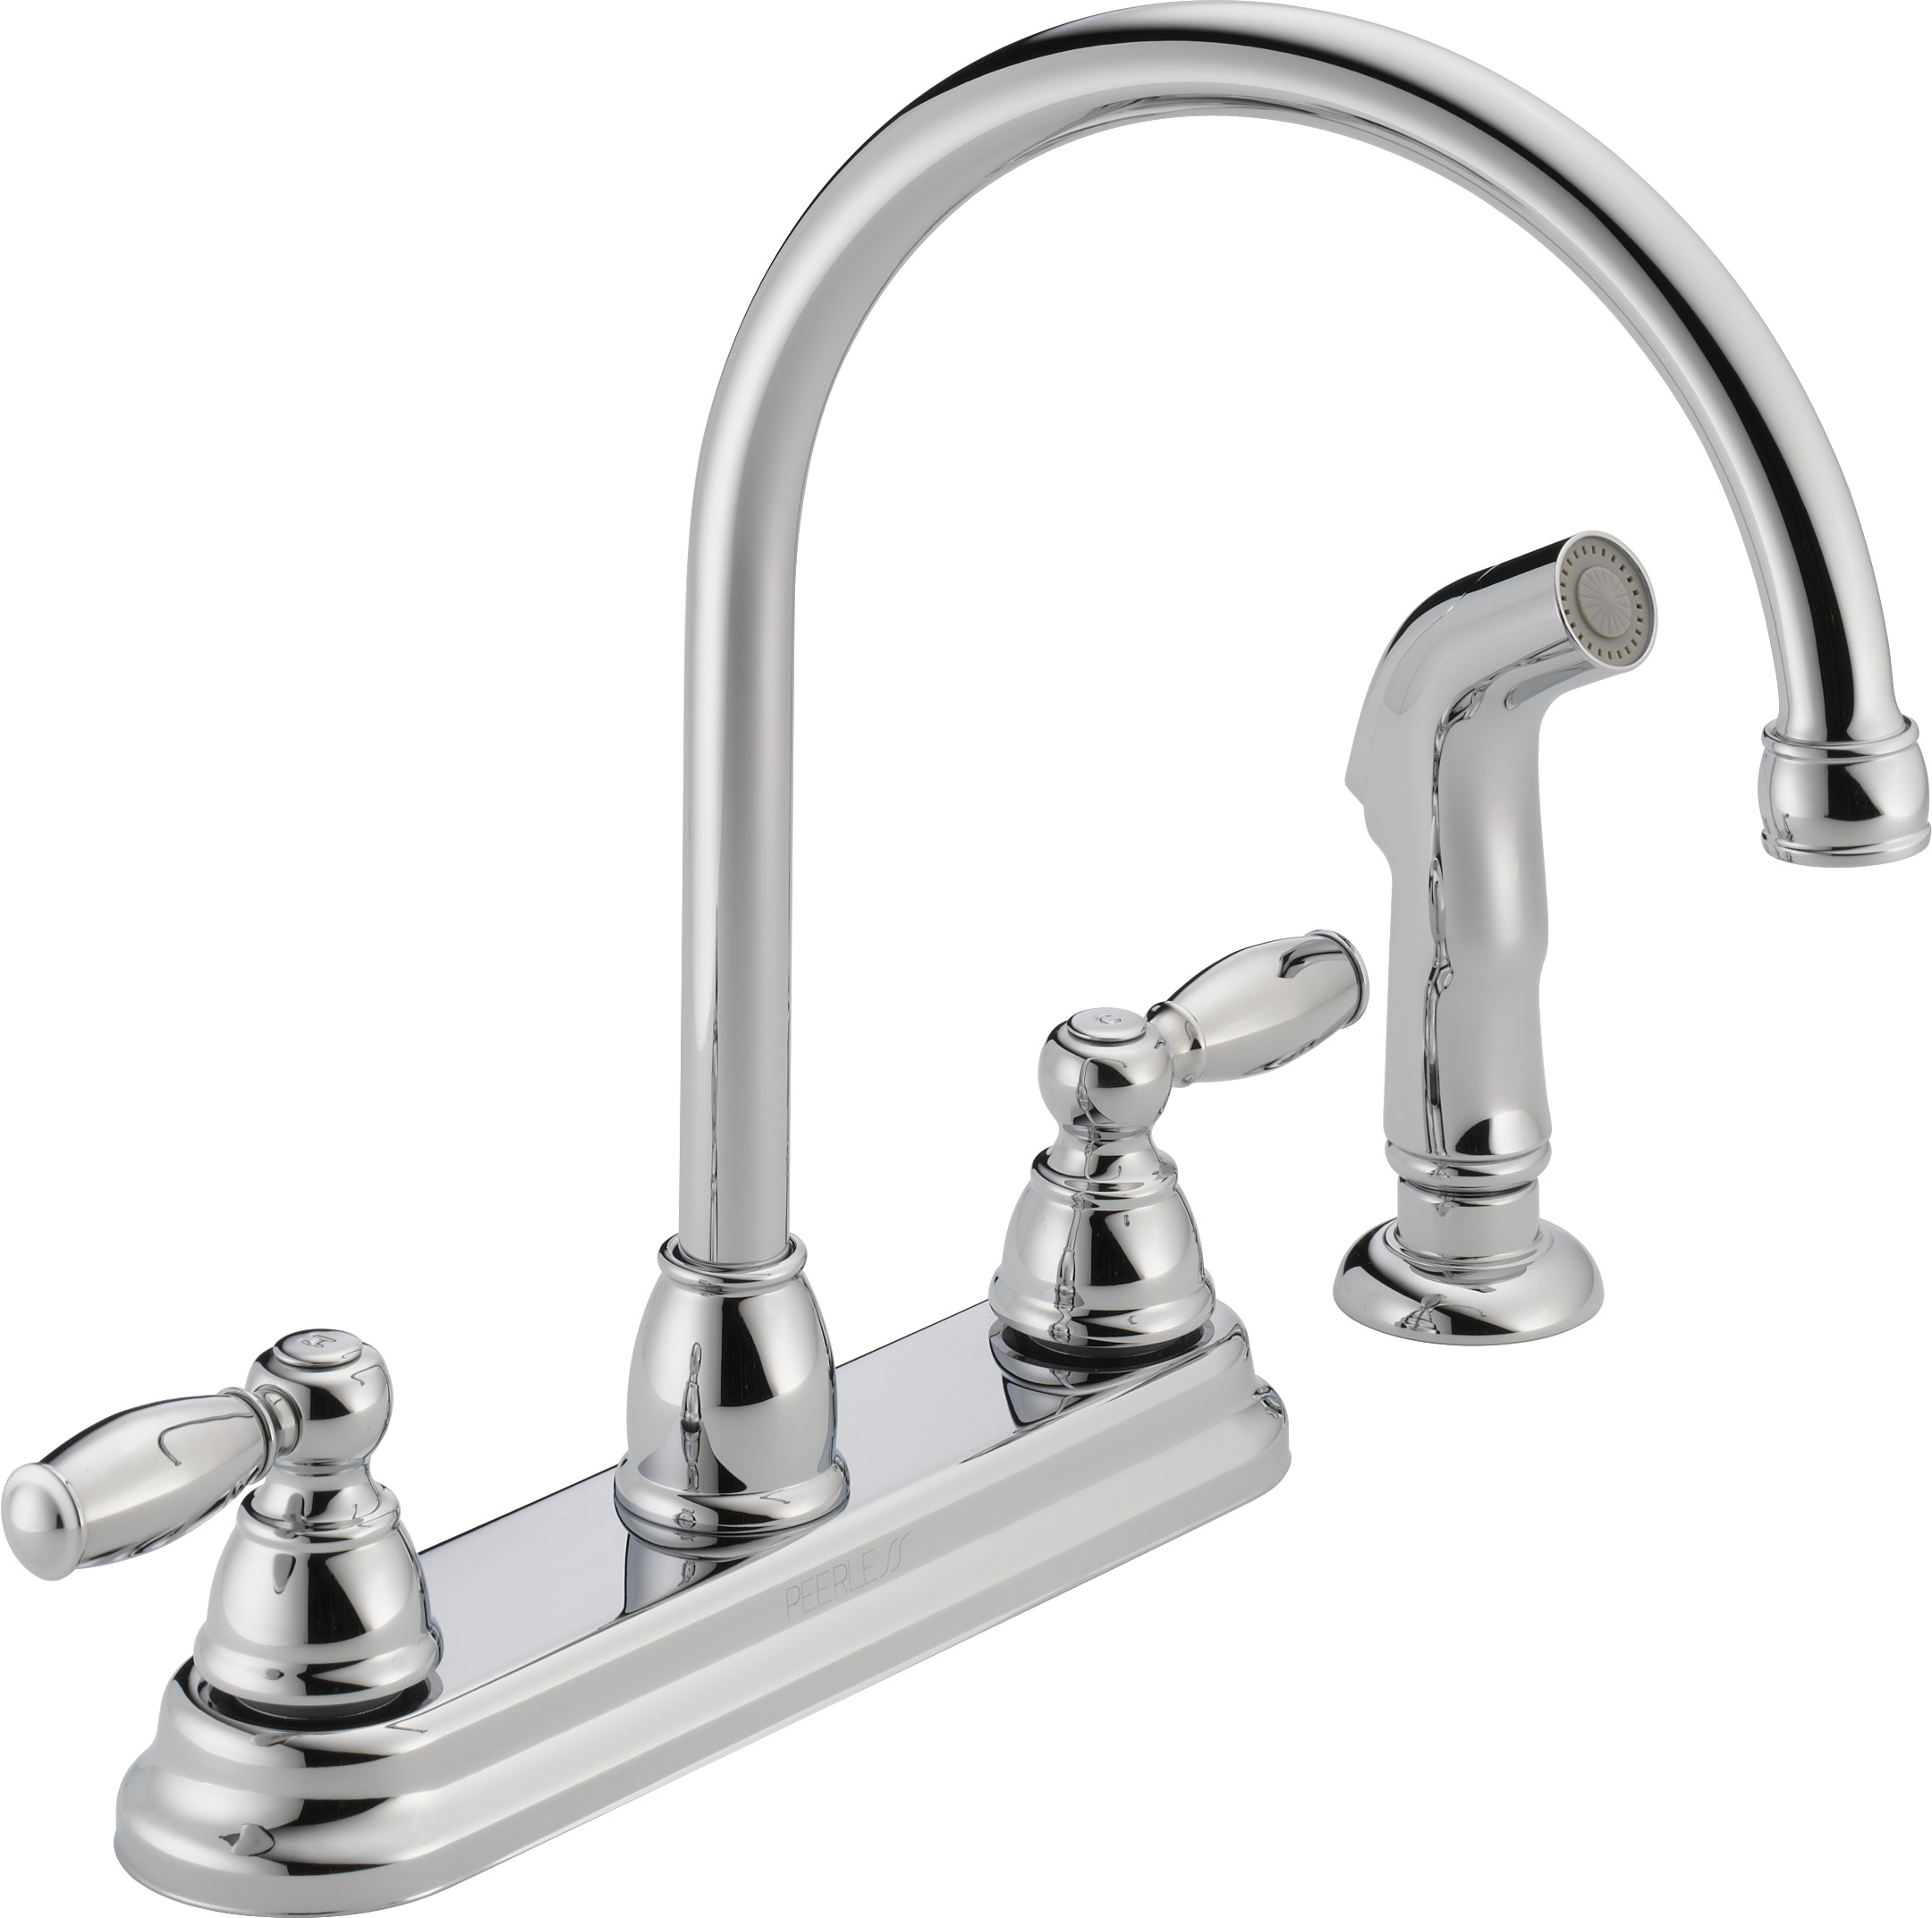 Superb Peerless Two Handle Kitchen Faucet With Side Sprayer, Chrome, #P299575LF